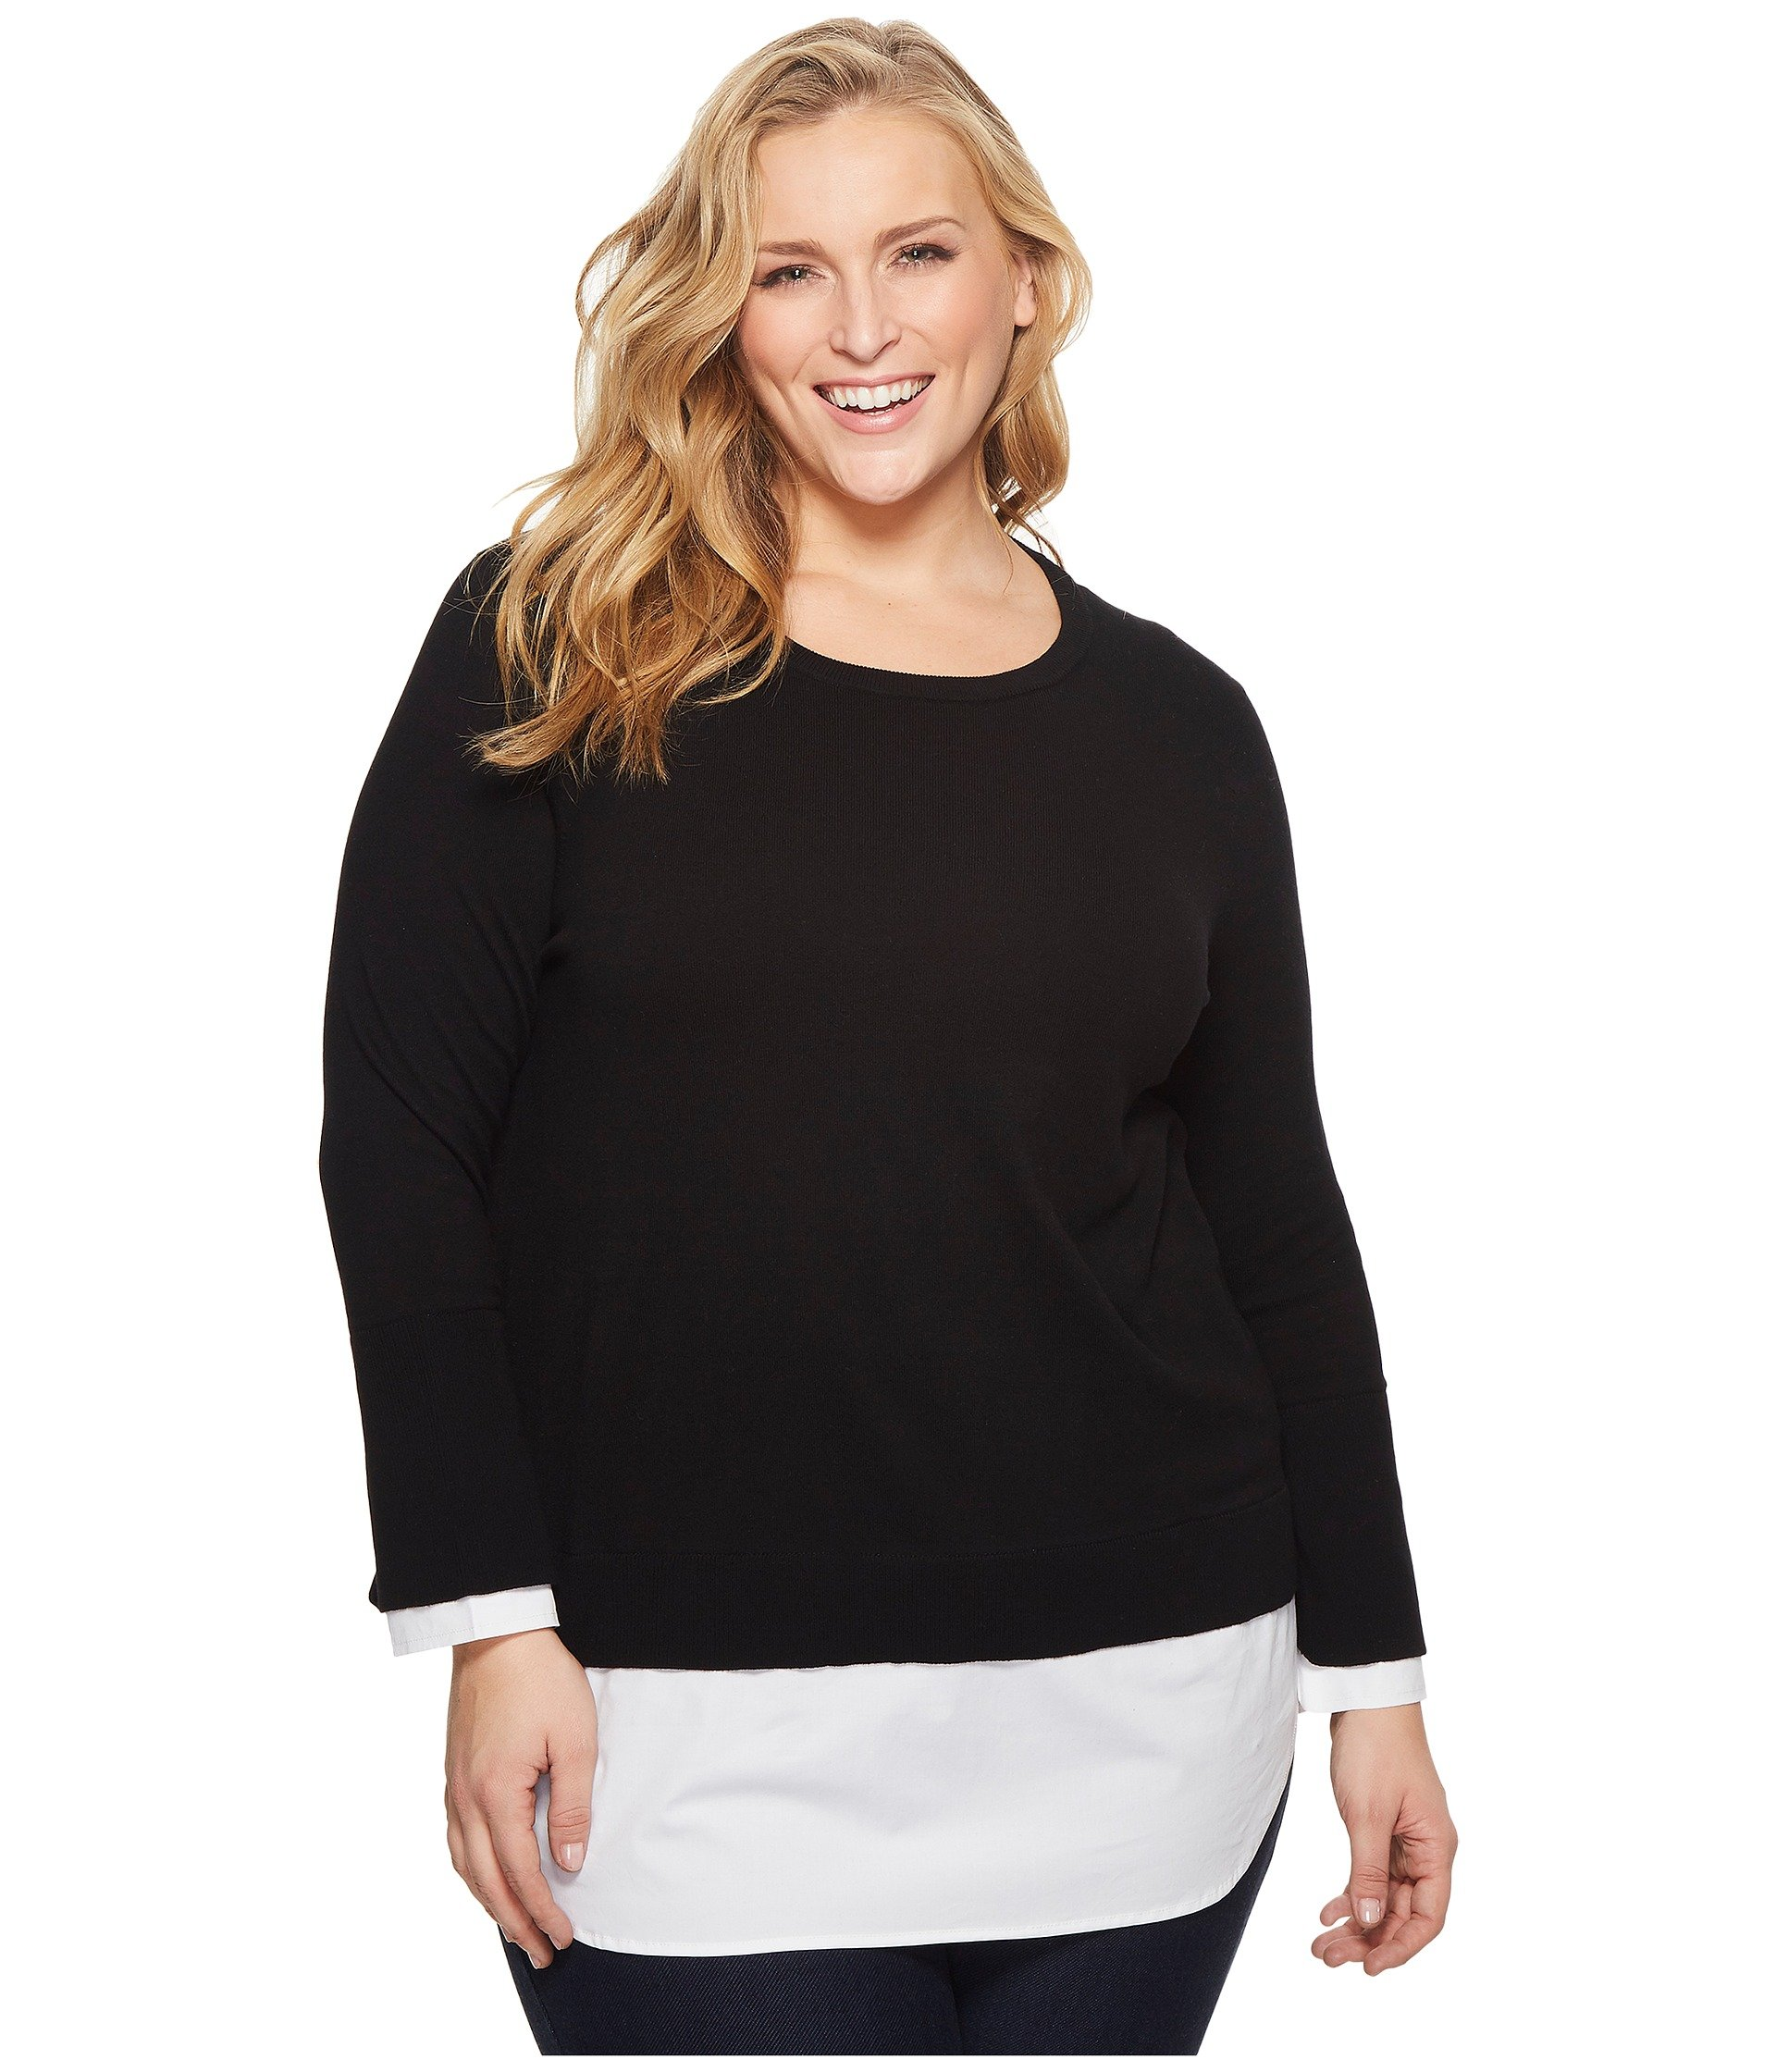 Saco para Mujer Vince Camuto Specialty Size Plus Size Long Sleeve Mix Media Sweater with Cotton Poplin  + Vince Camuto en VeoyCompro.net